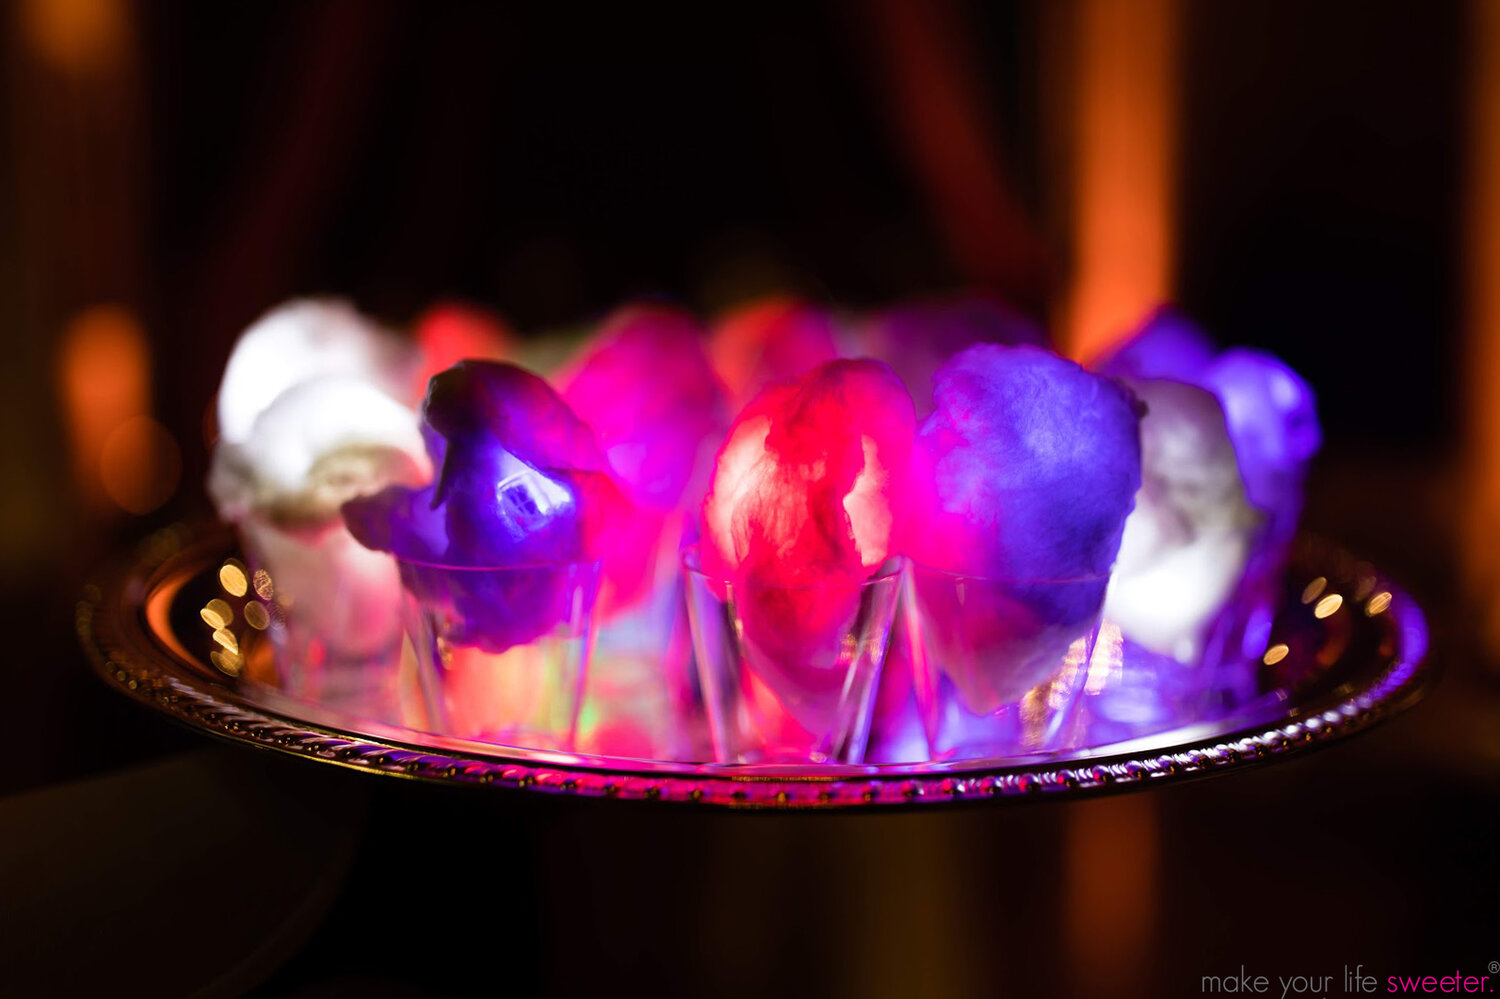 Sugaire glowing cotton candy will take your event to the next level!